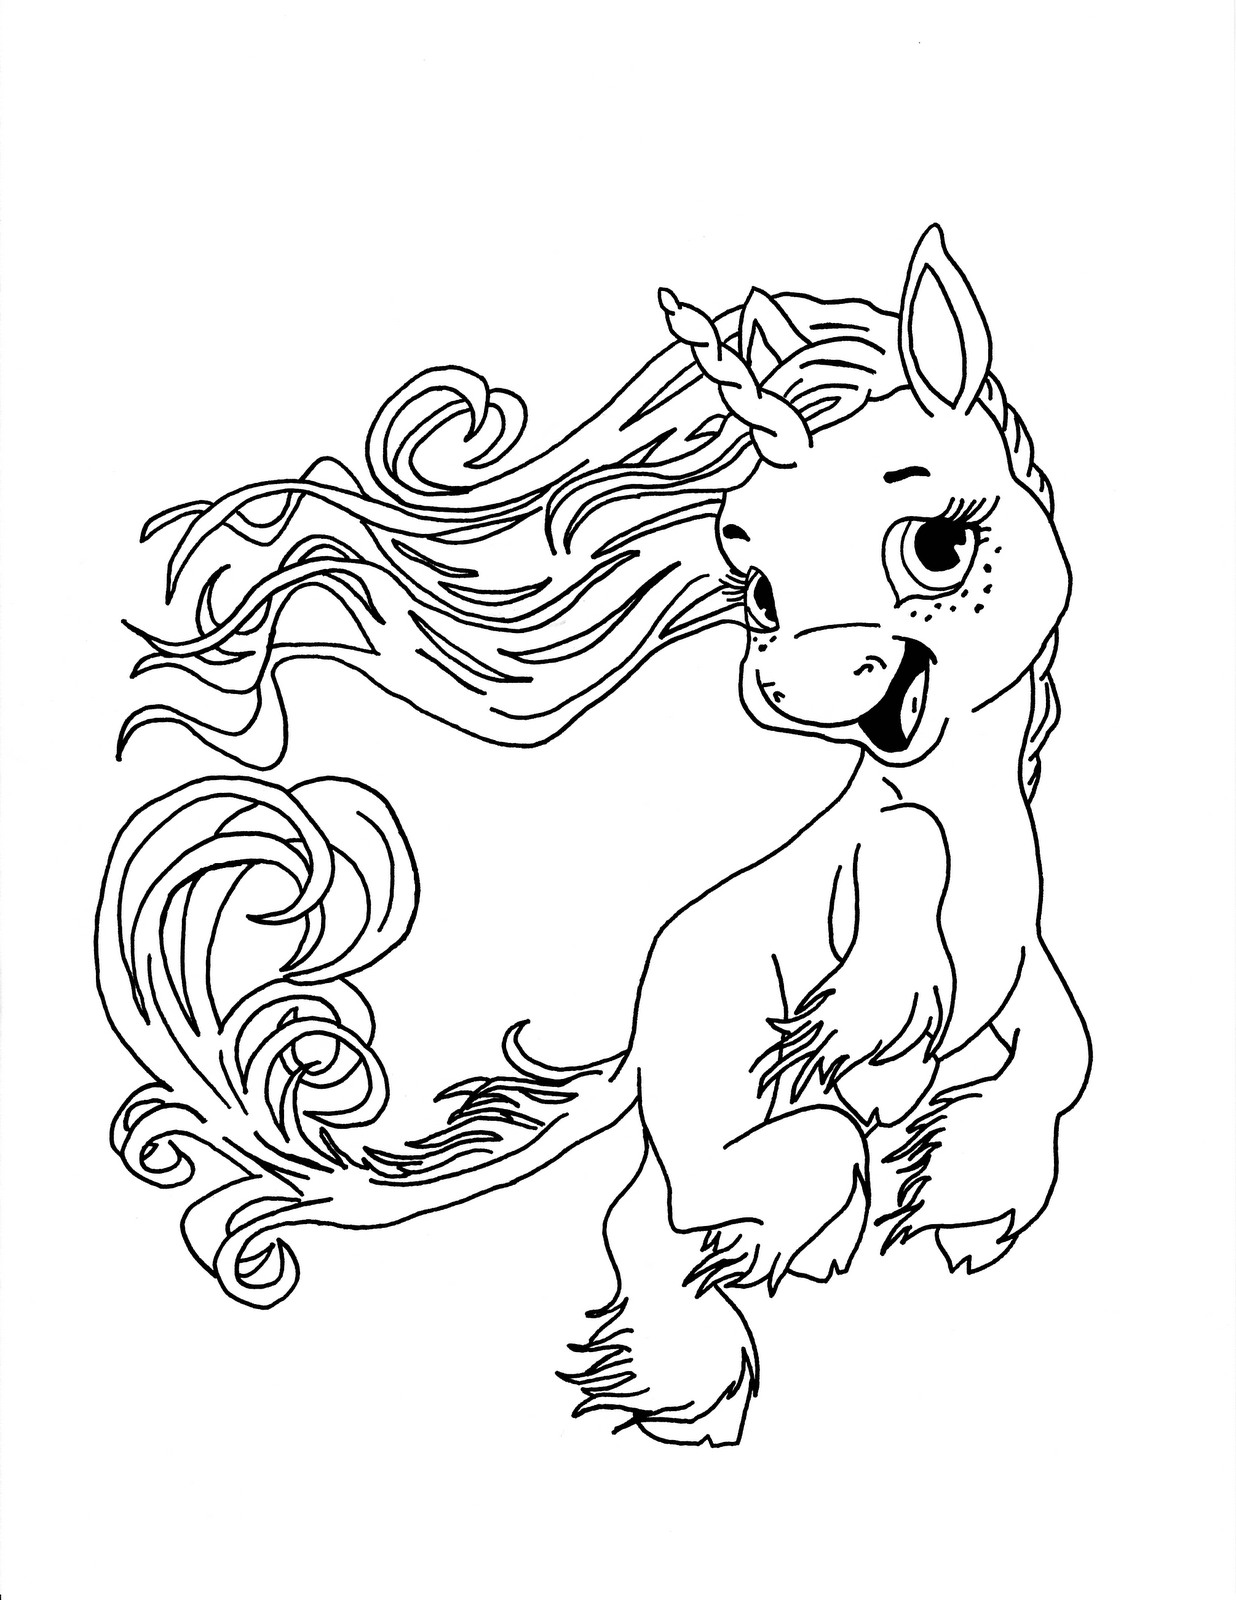 Unicorn Color Pages for Children Unicorn coloring pages